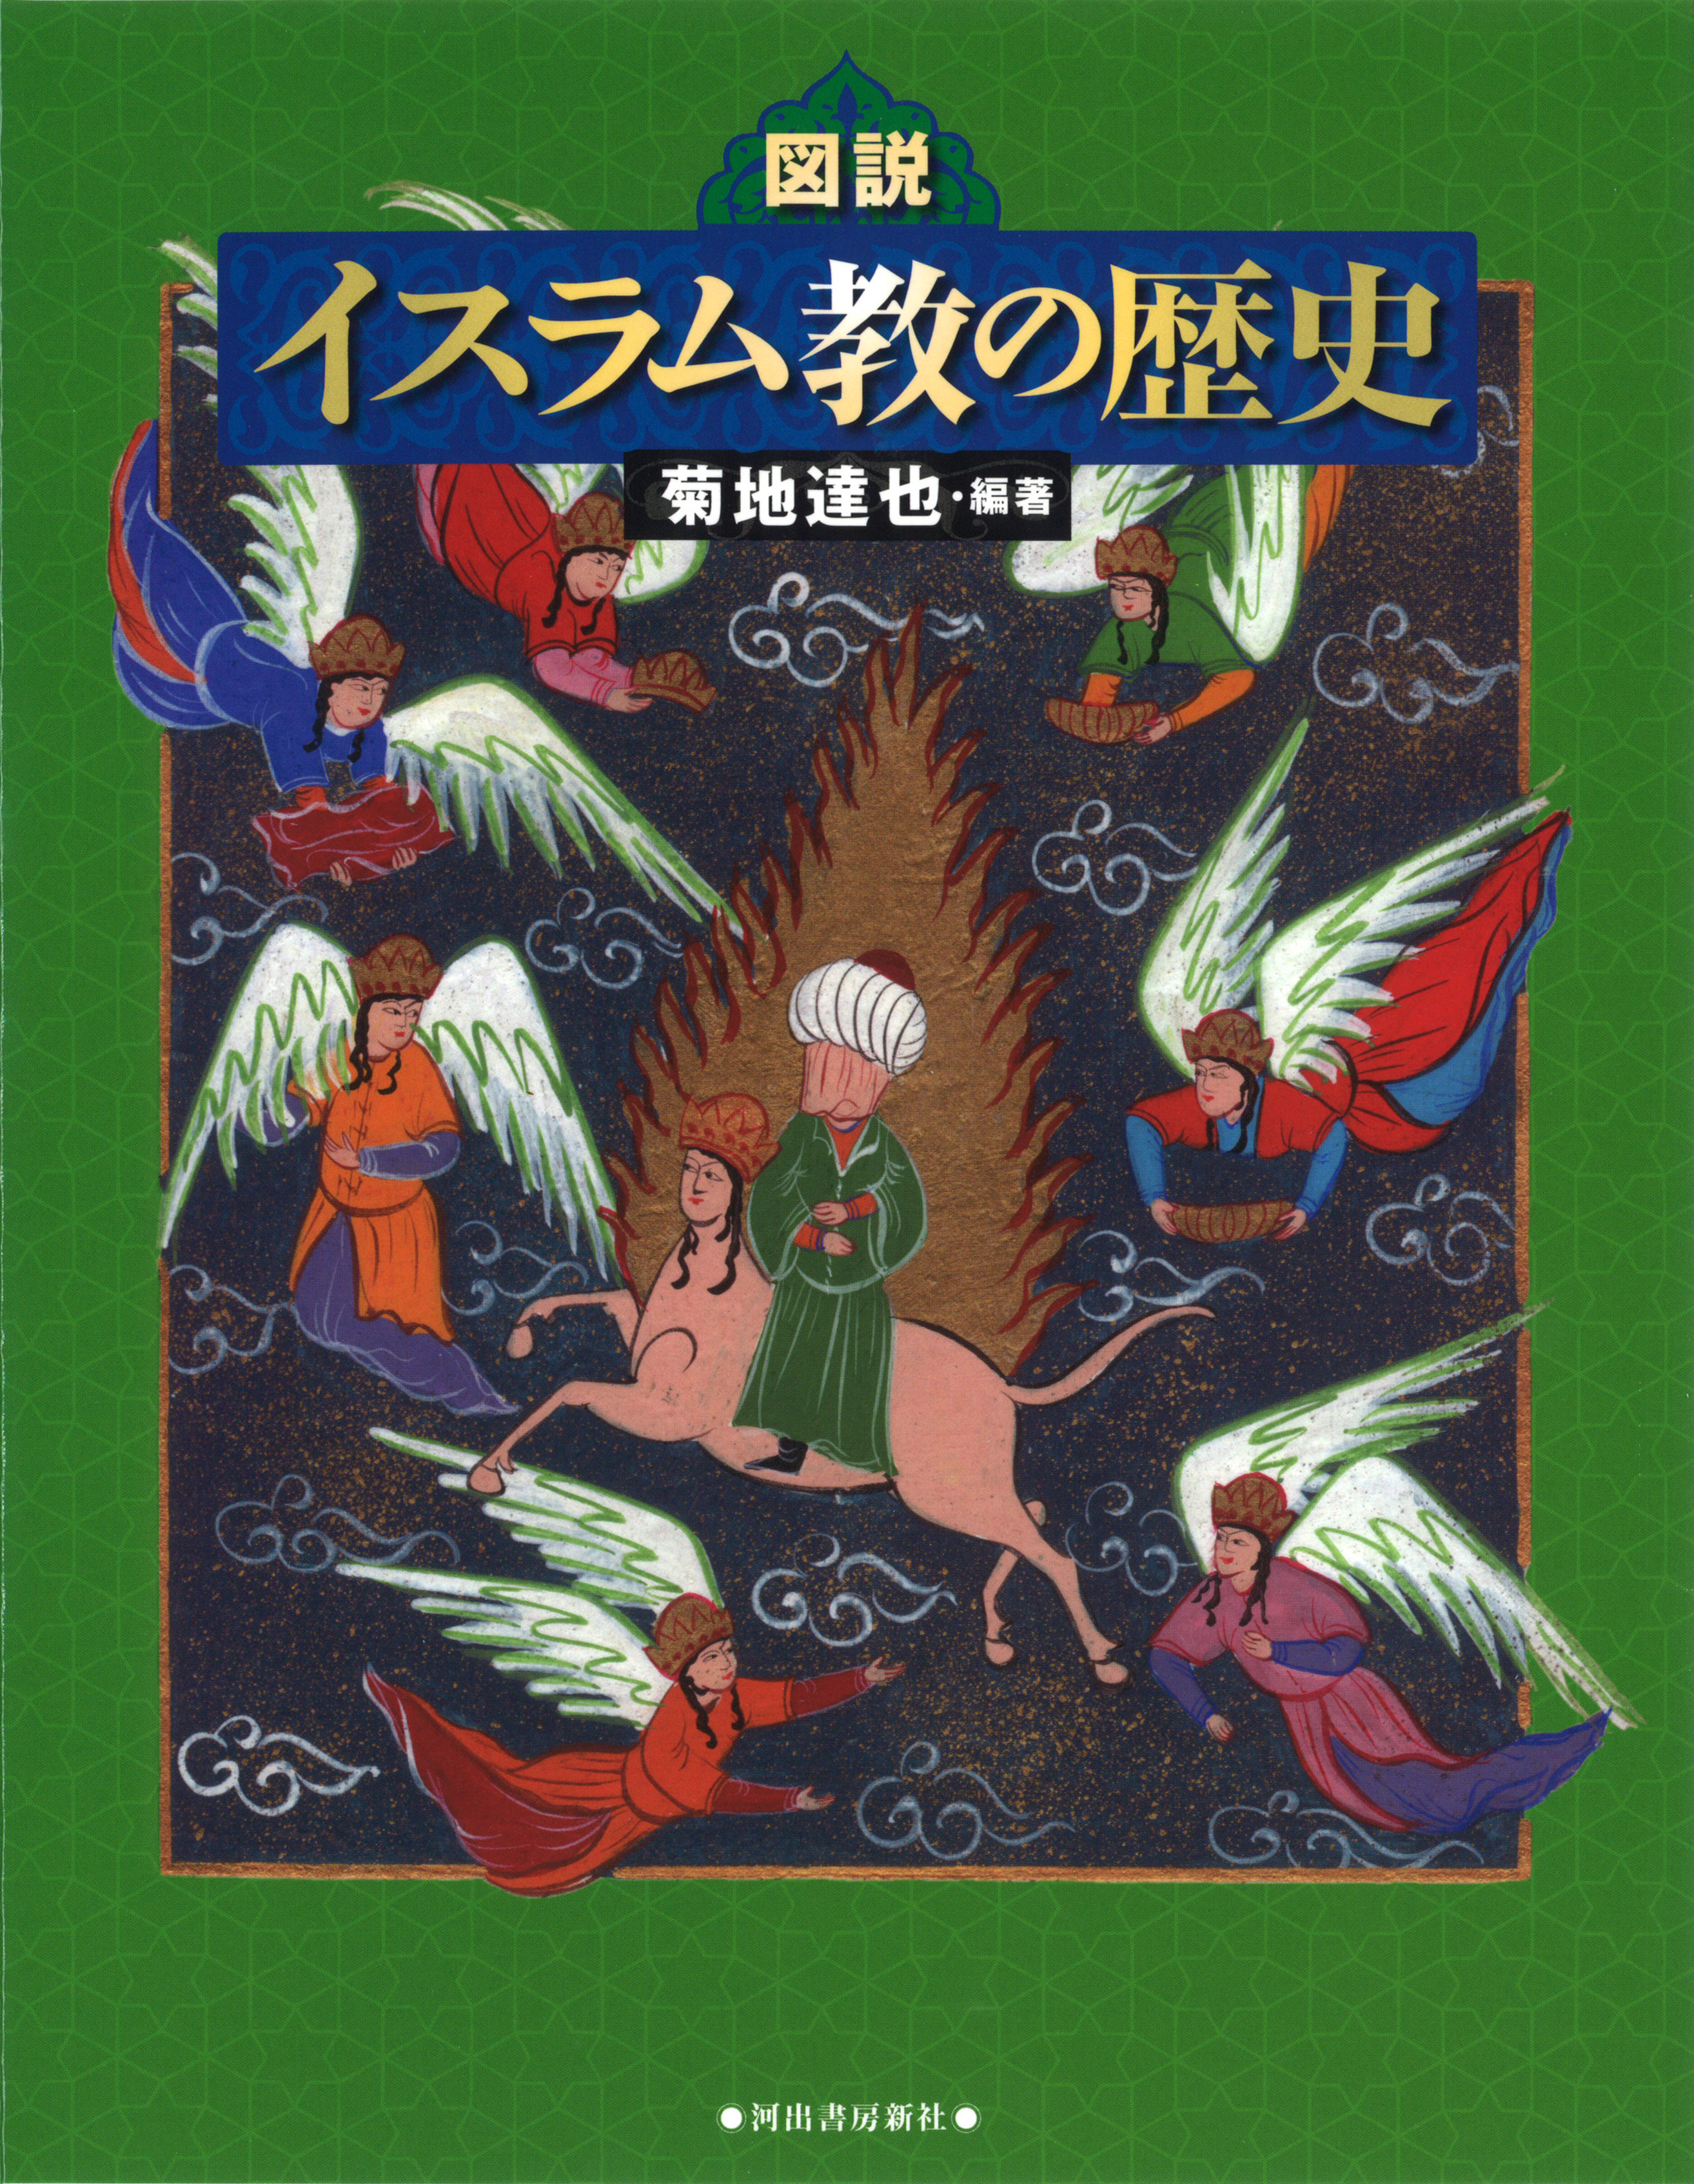 An illustration of Muslims in the center of dark green cover